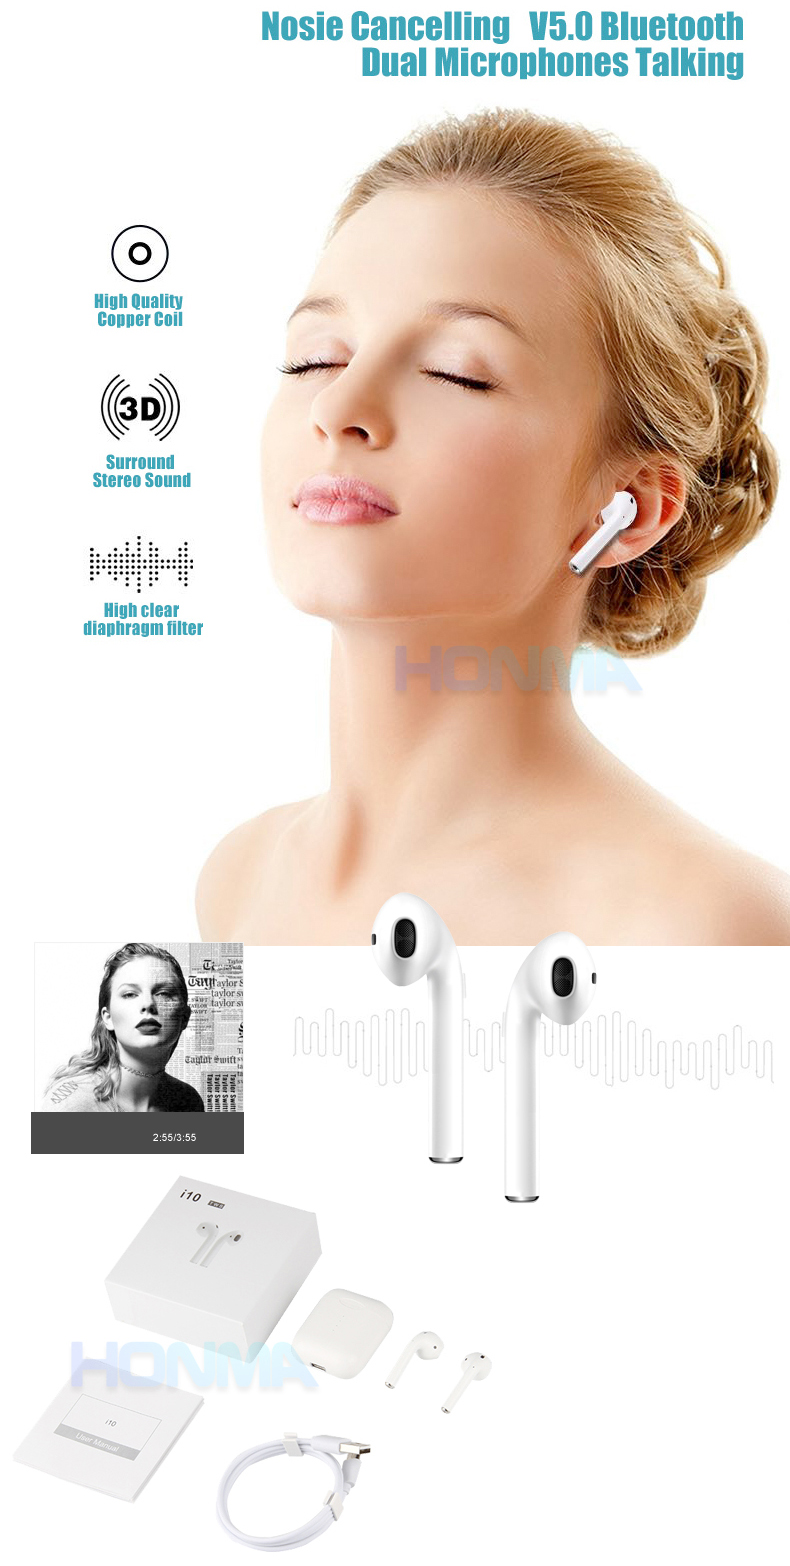 Wireless Touch Screen Headphone I10,Tws Touch Earbuds I10,Touch Control  Bluetooths Earphone I10 - Buy Touch Earphone,Touch Control Earphone,Touch